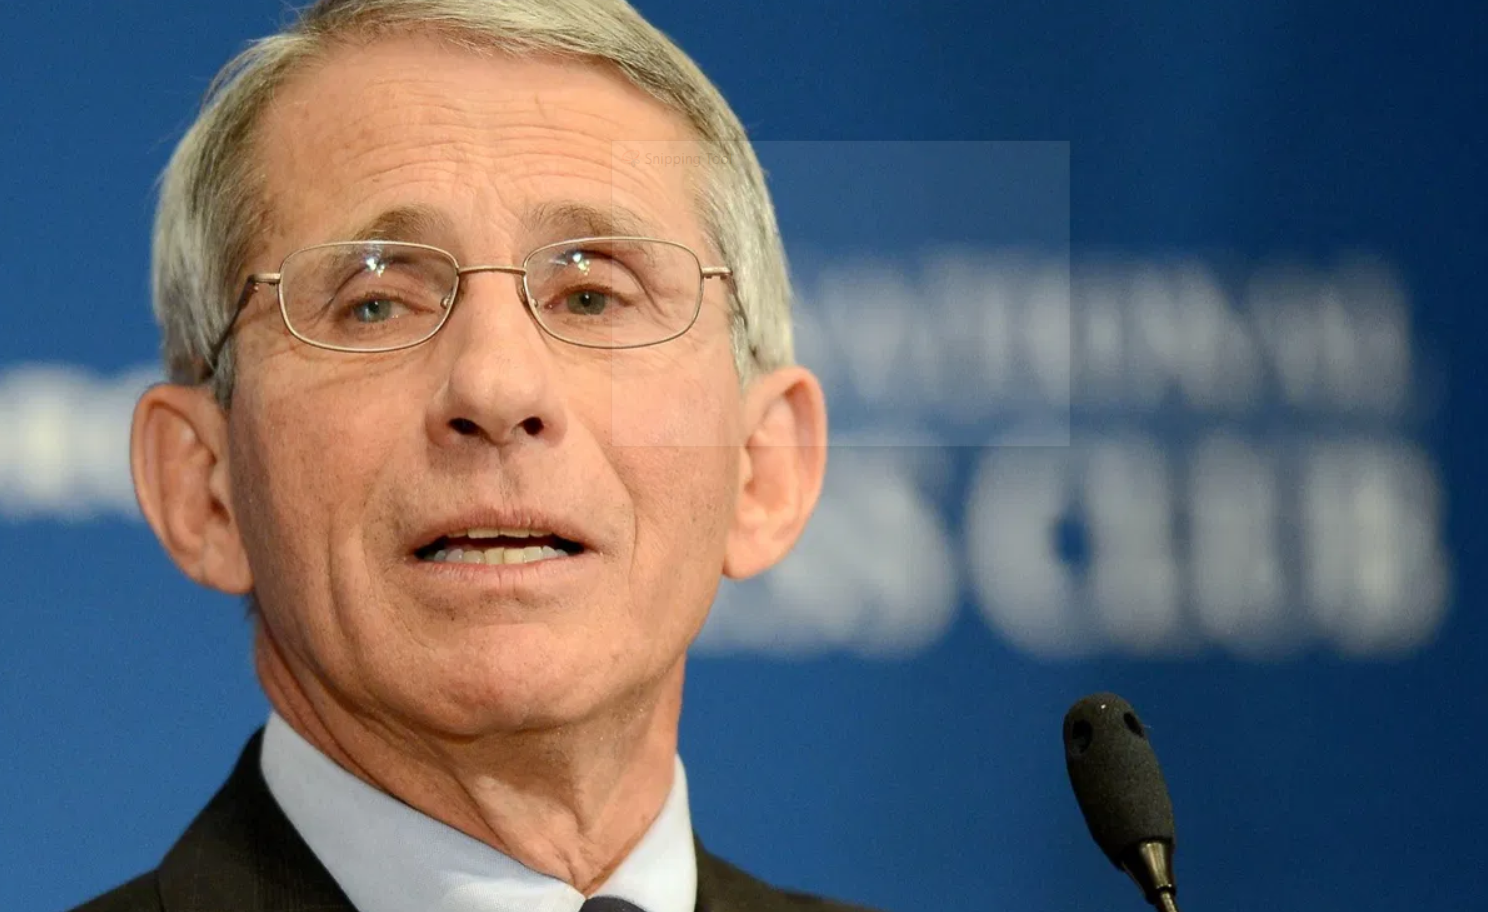 Which COVID Vaccine is Dr. Fauci Getting?